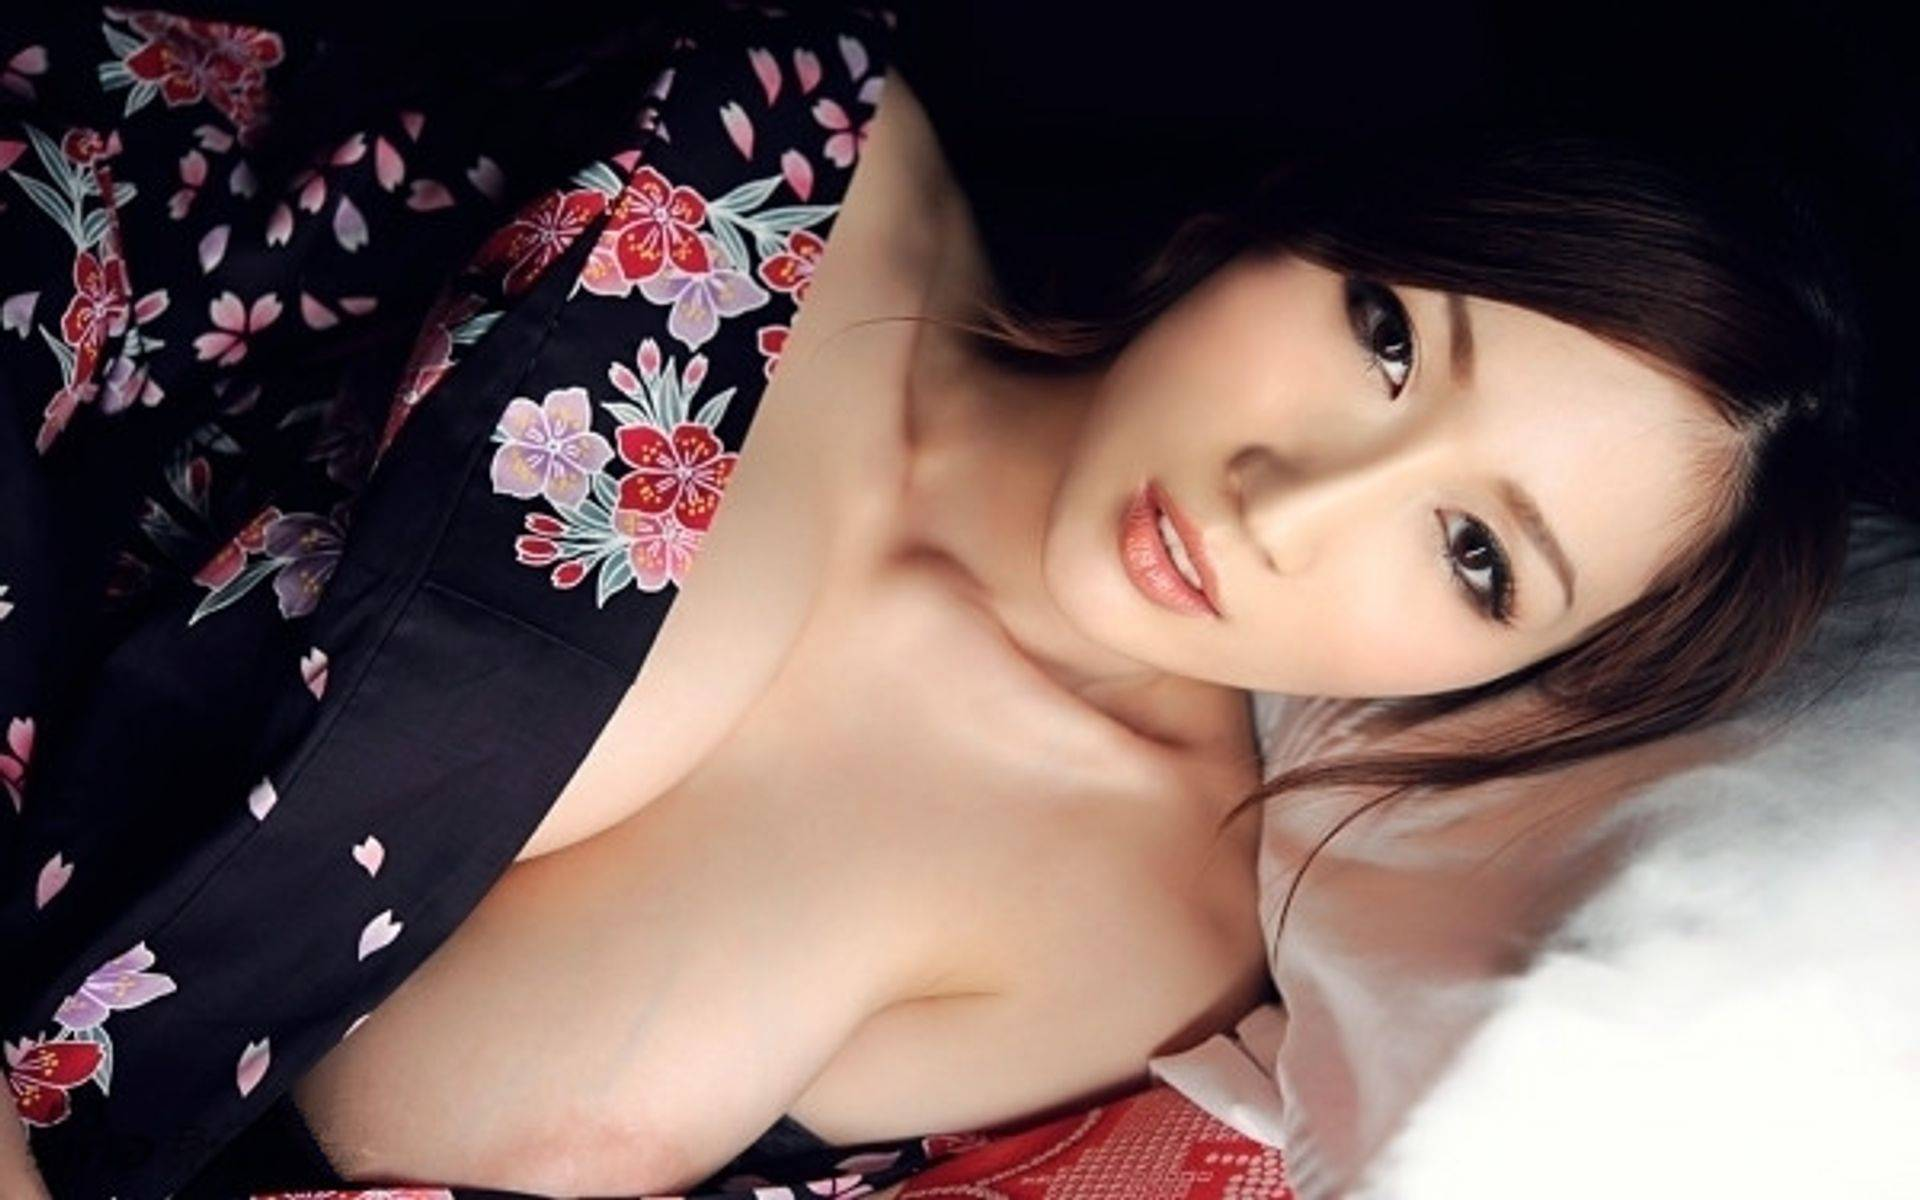 Asian Star Massage in Dubai